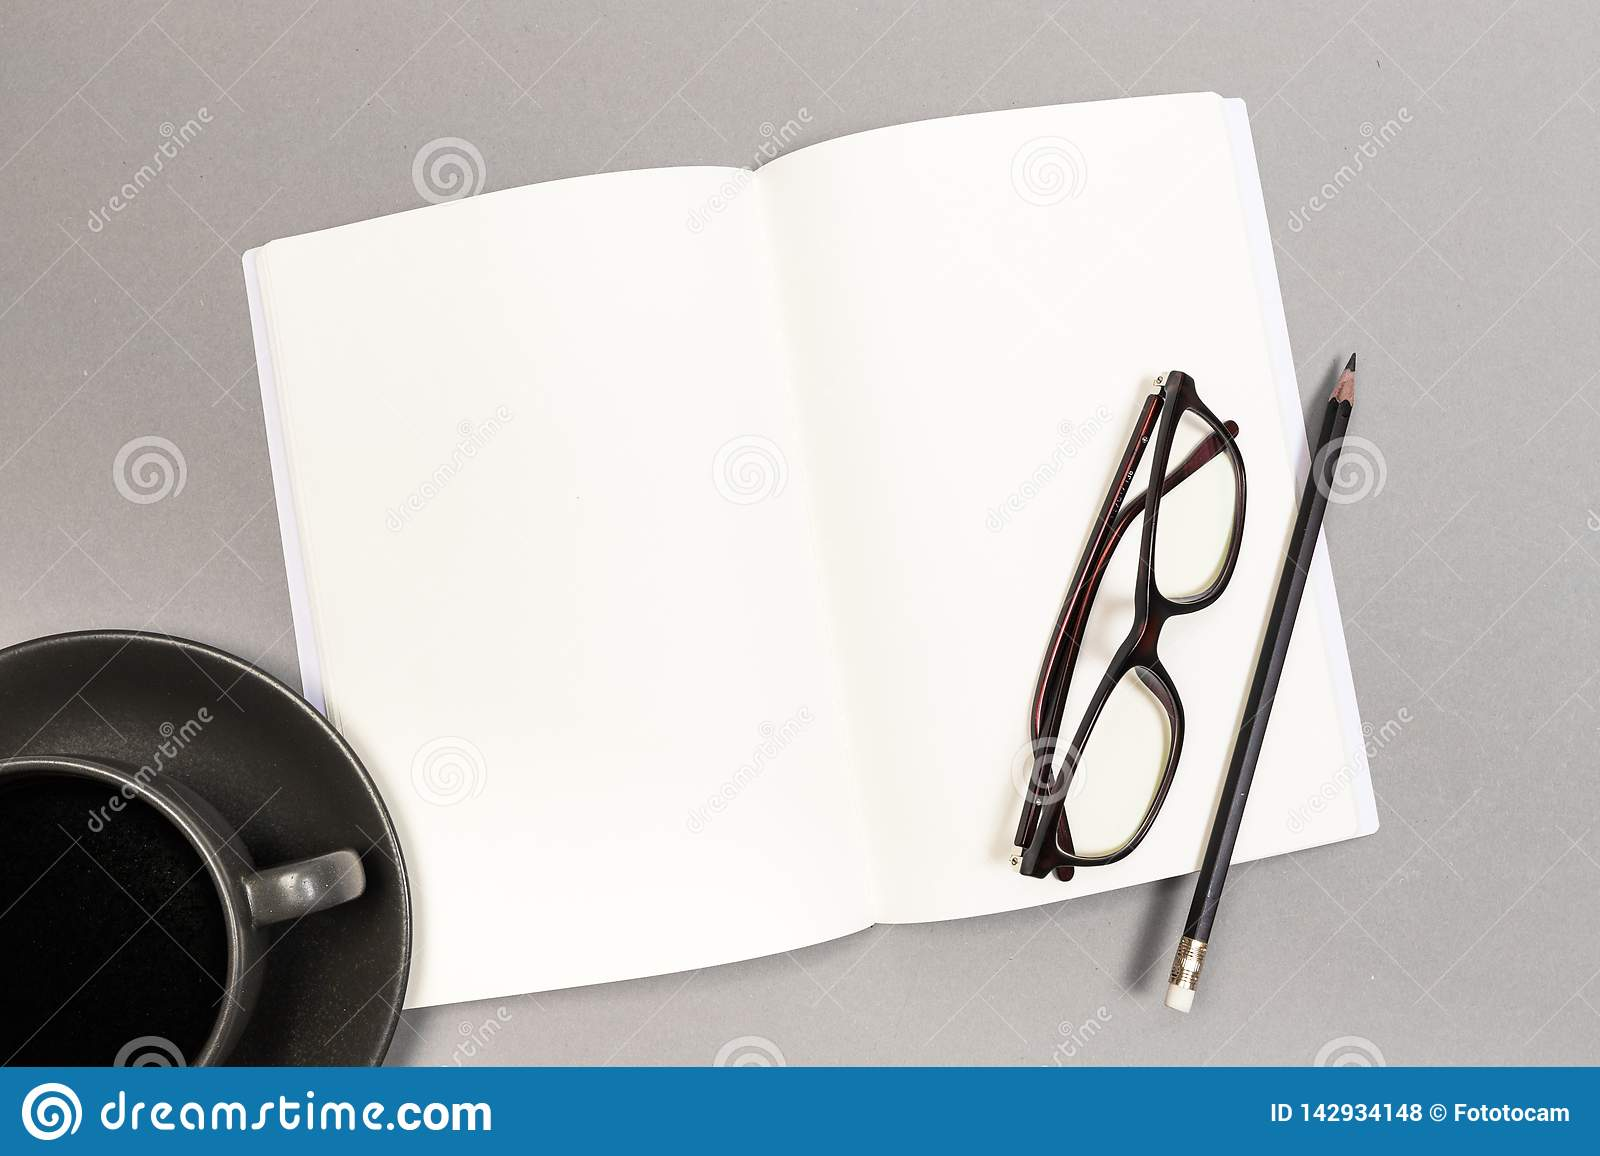 Blank Hard Cover Of Magazine, Book, Booklet, Brochure with coffee cup pencil and glasses. Mock Up Template Ready For Your Design